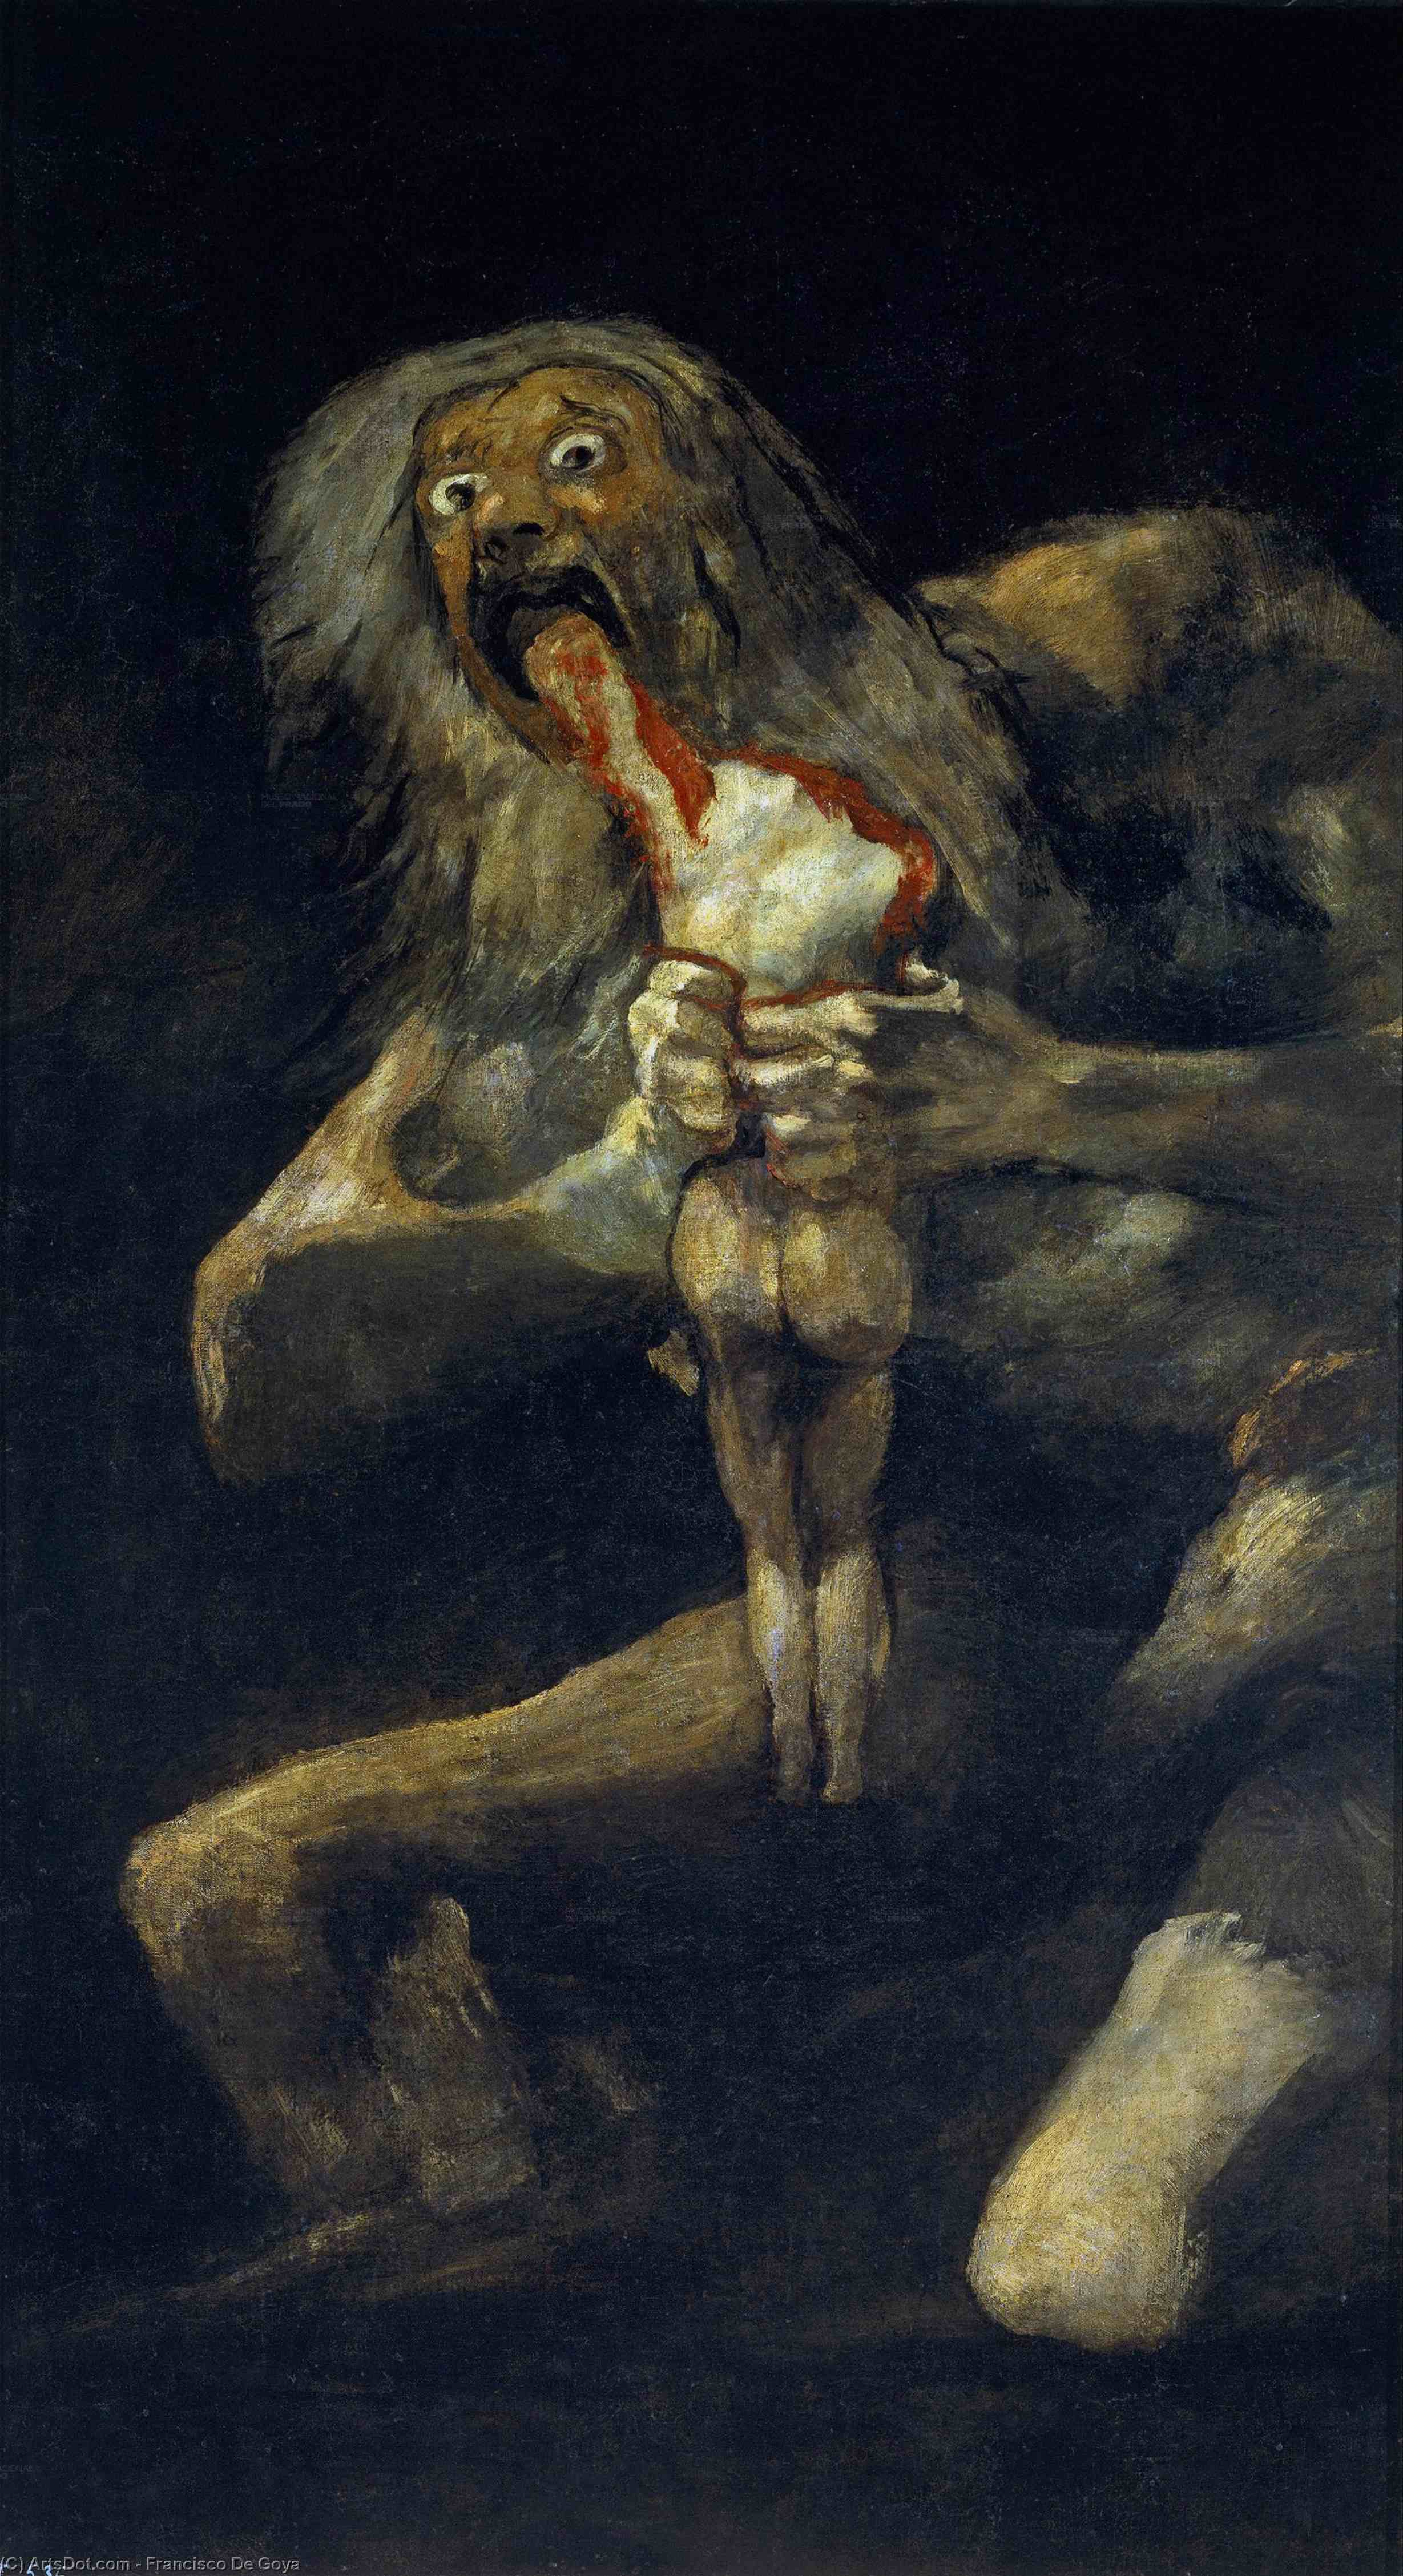 Order Paintings Reproductions | Saturn Devouring His Son, 1823 by Francisco De Goya (1746-1828, Spain) | ArtsDot.com